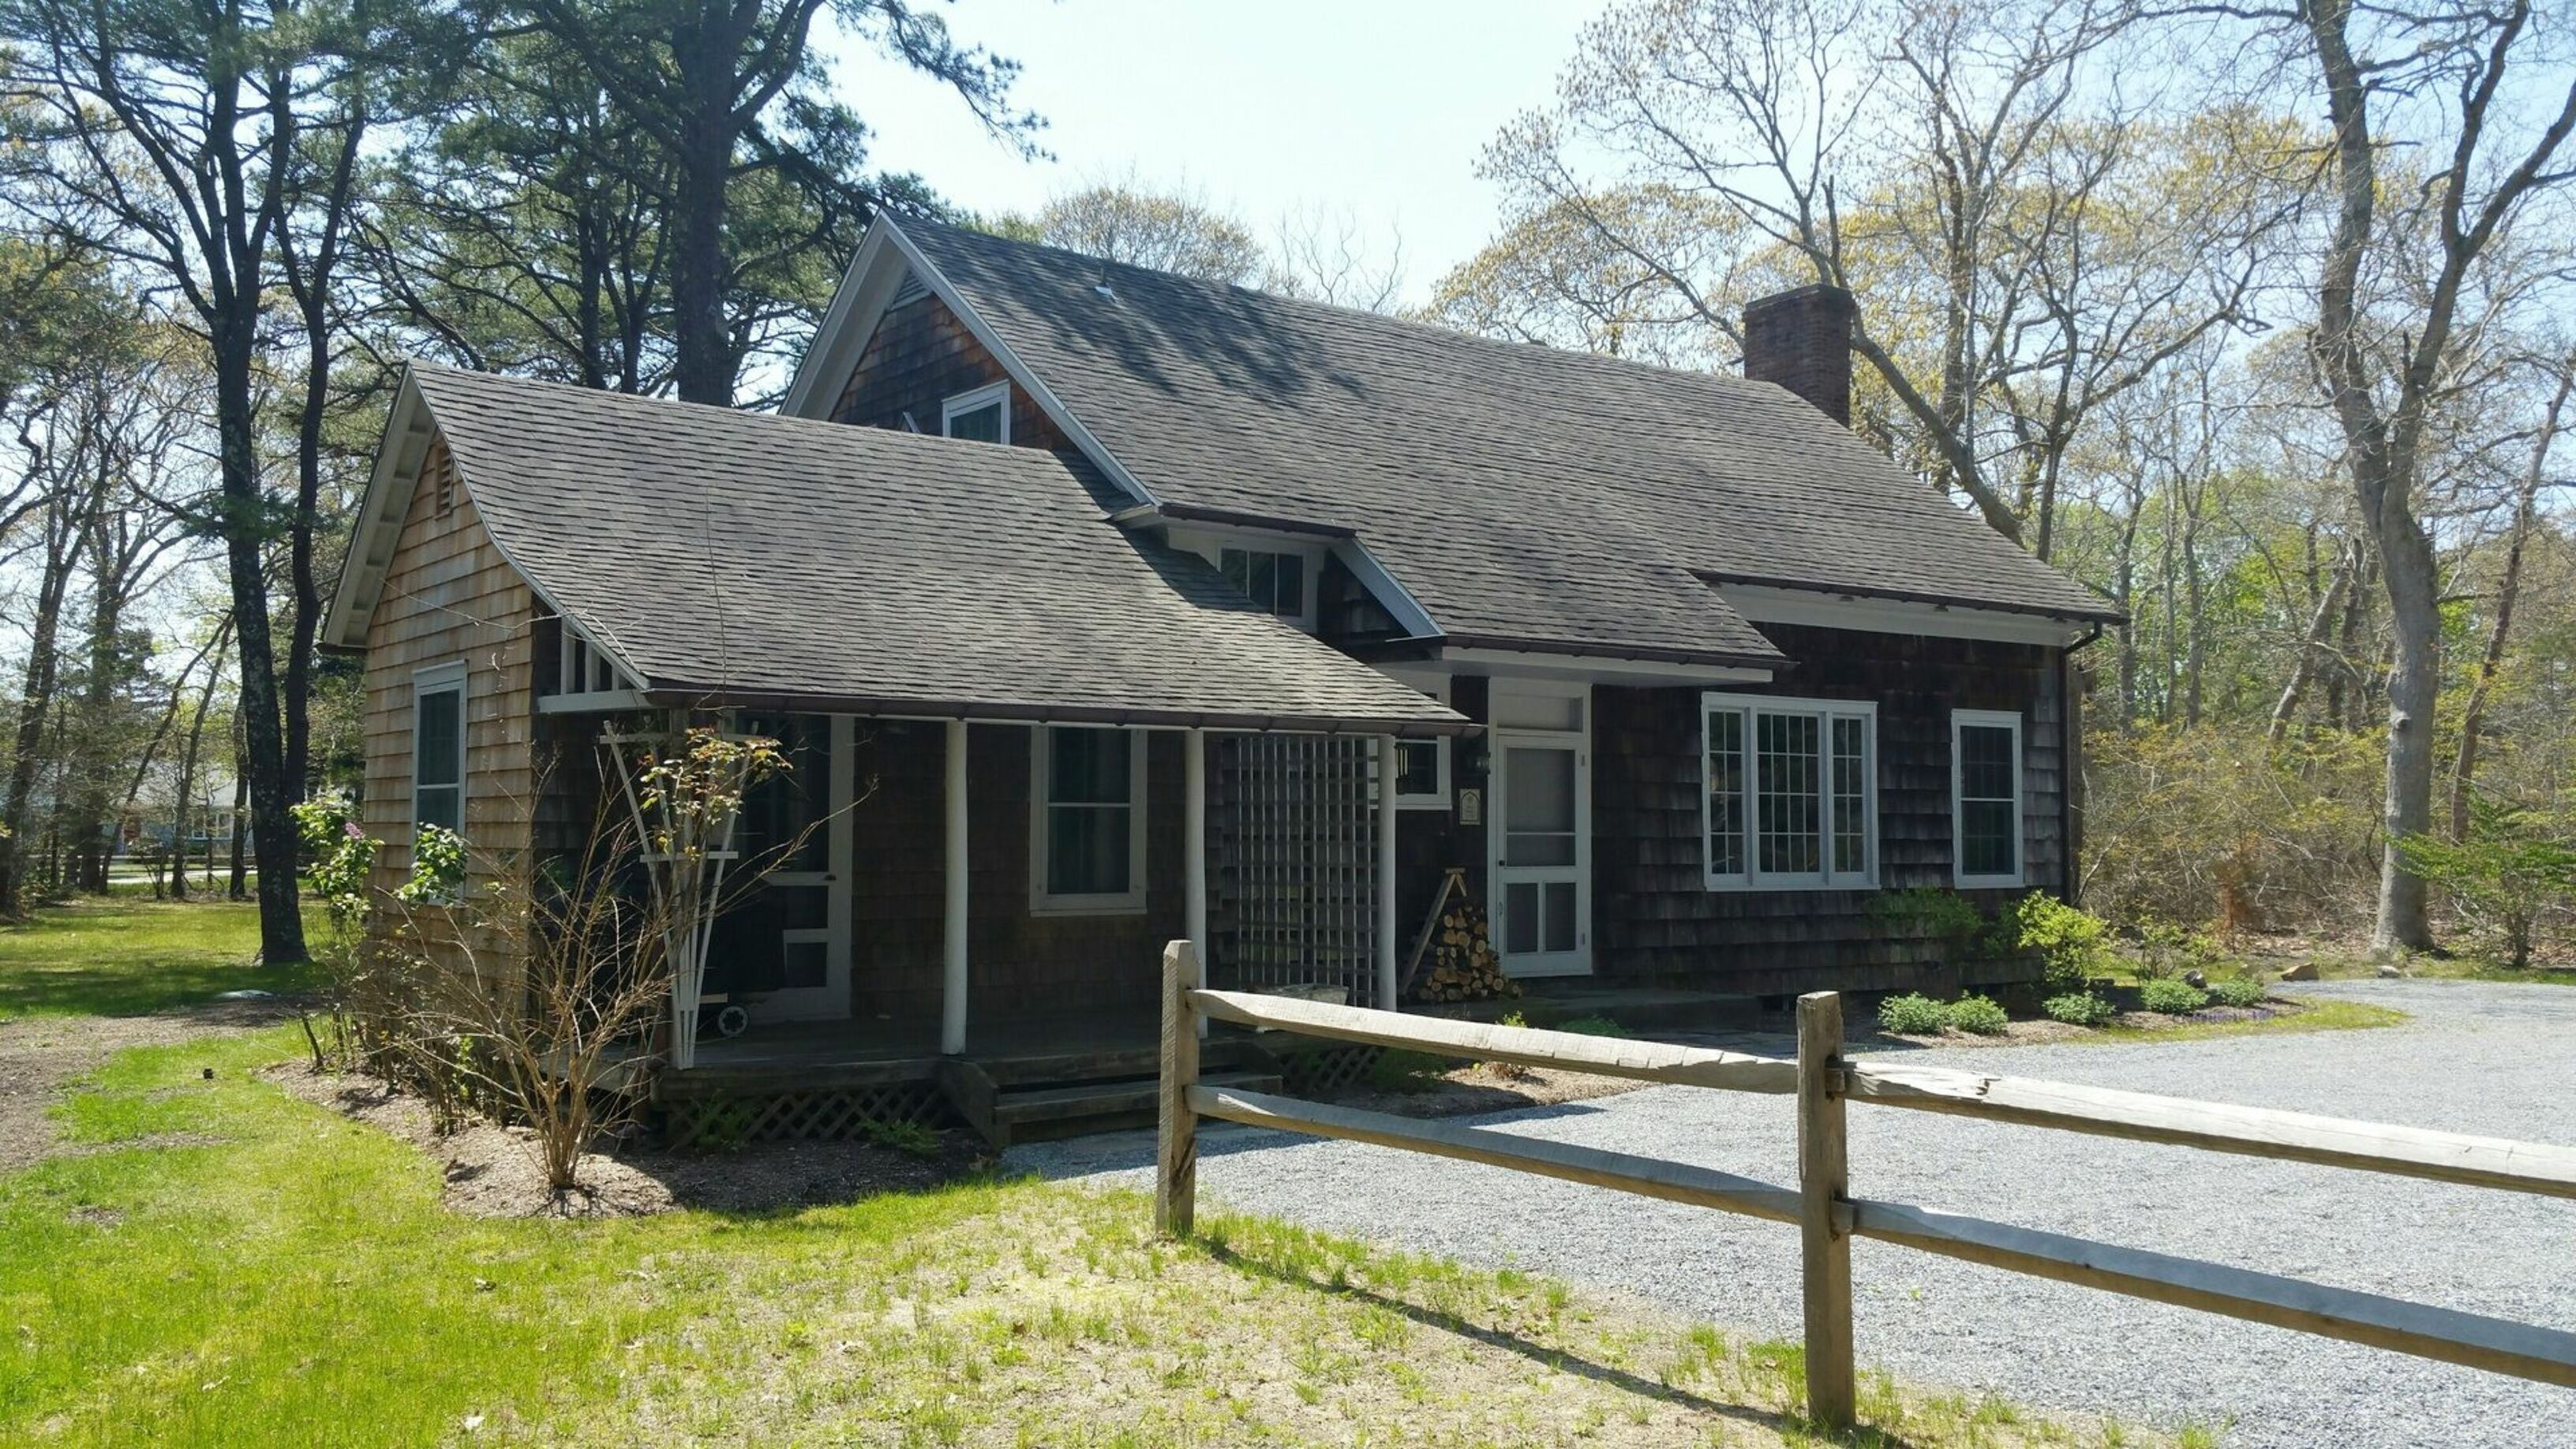 90 Old Depot Rd (the Folly C.1733 - Front House) - Quogue South, New York